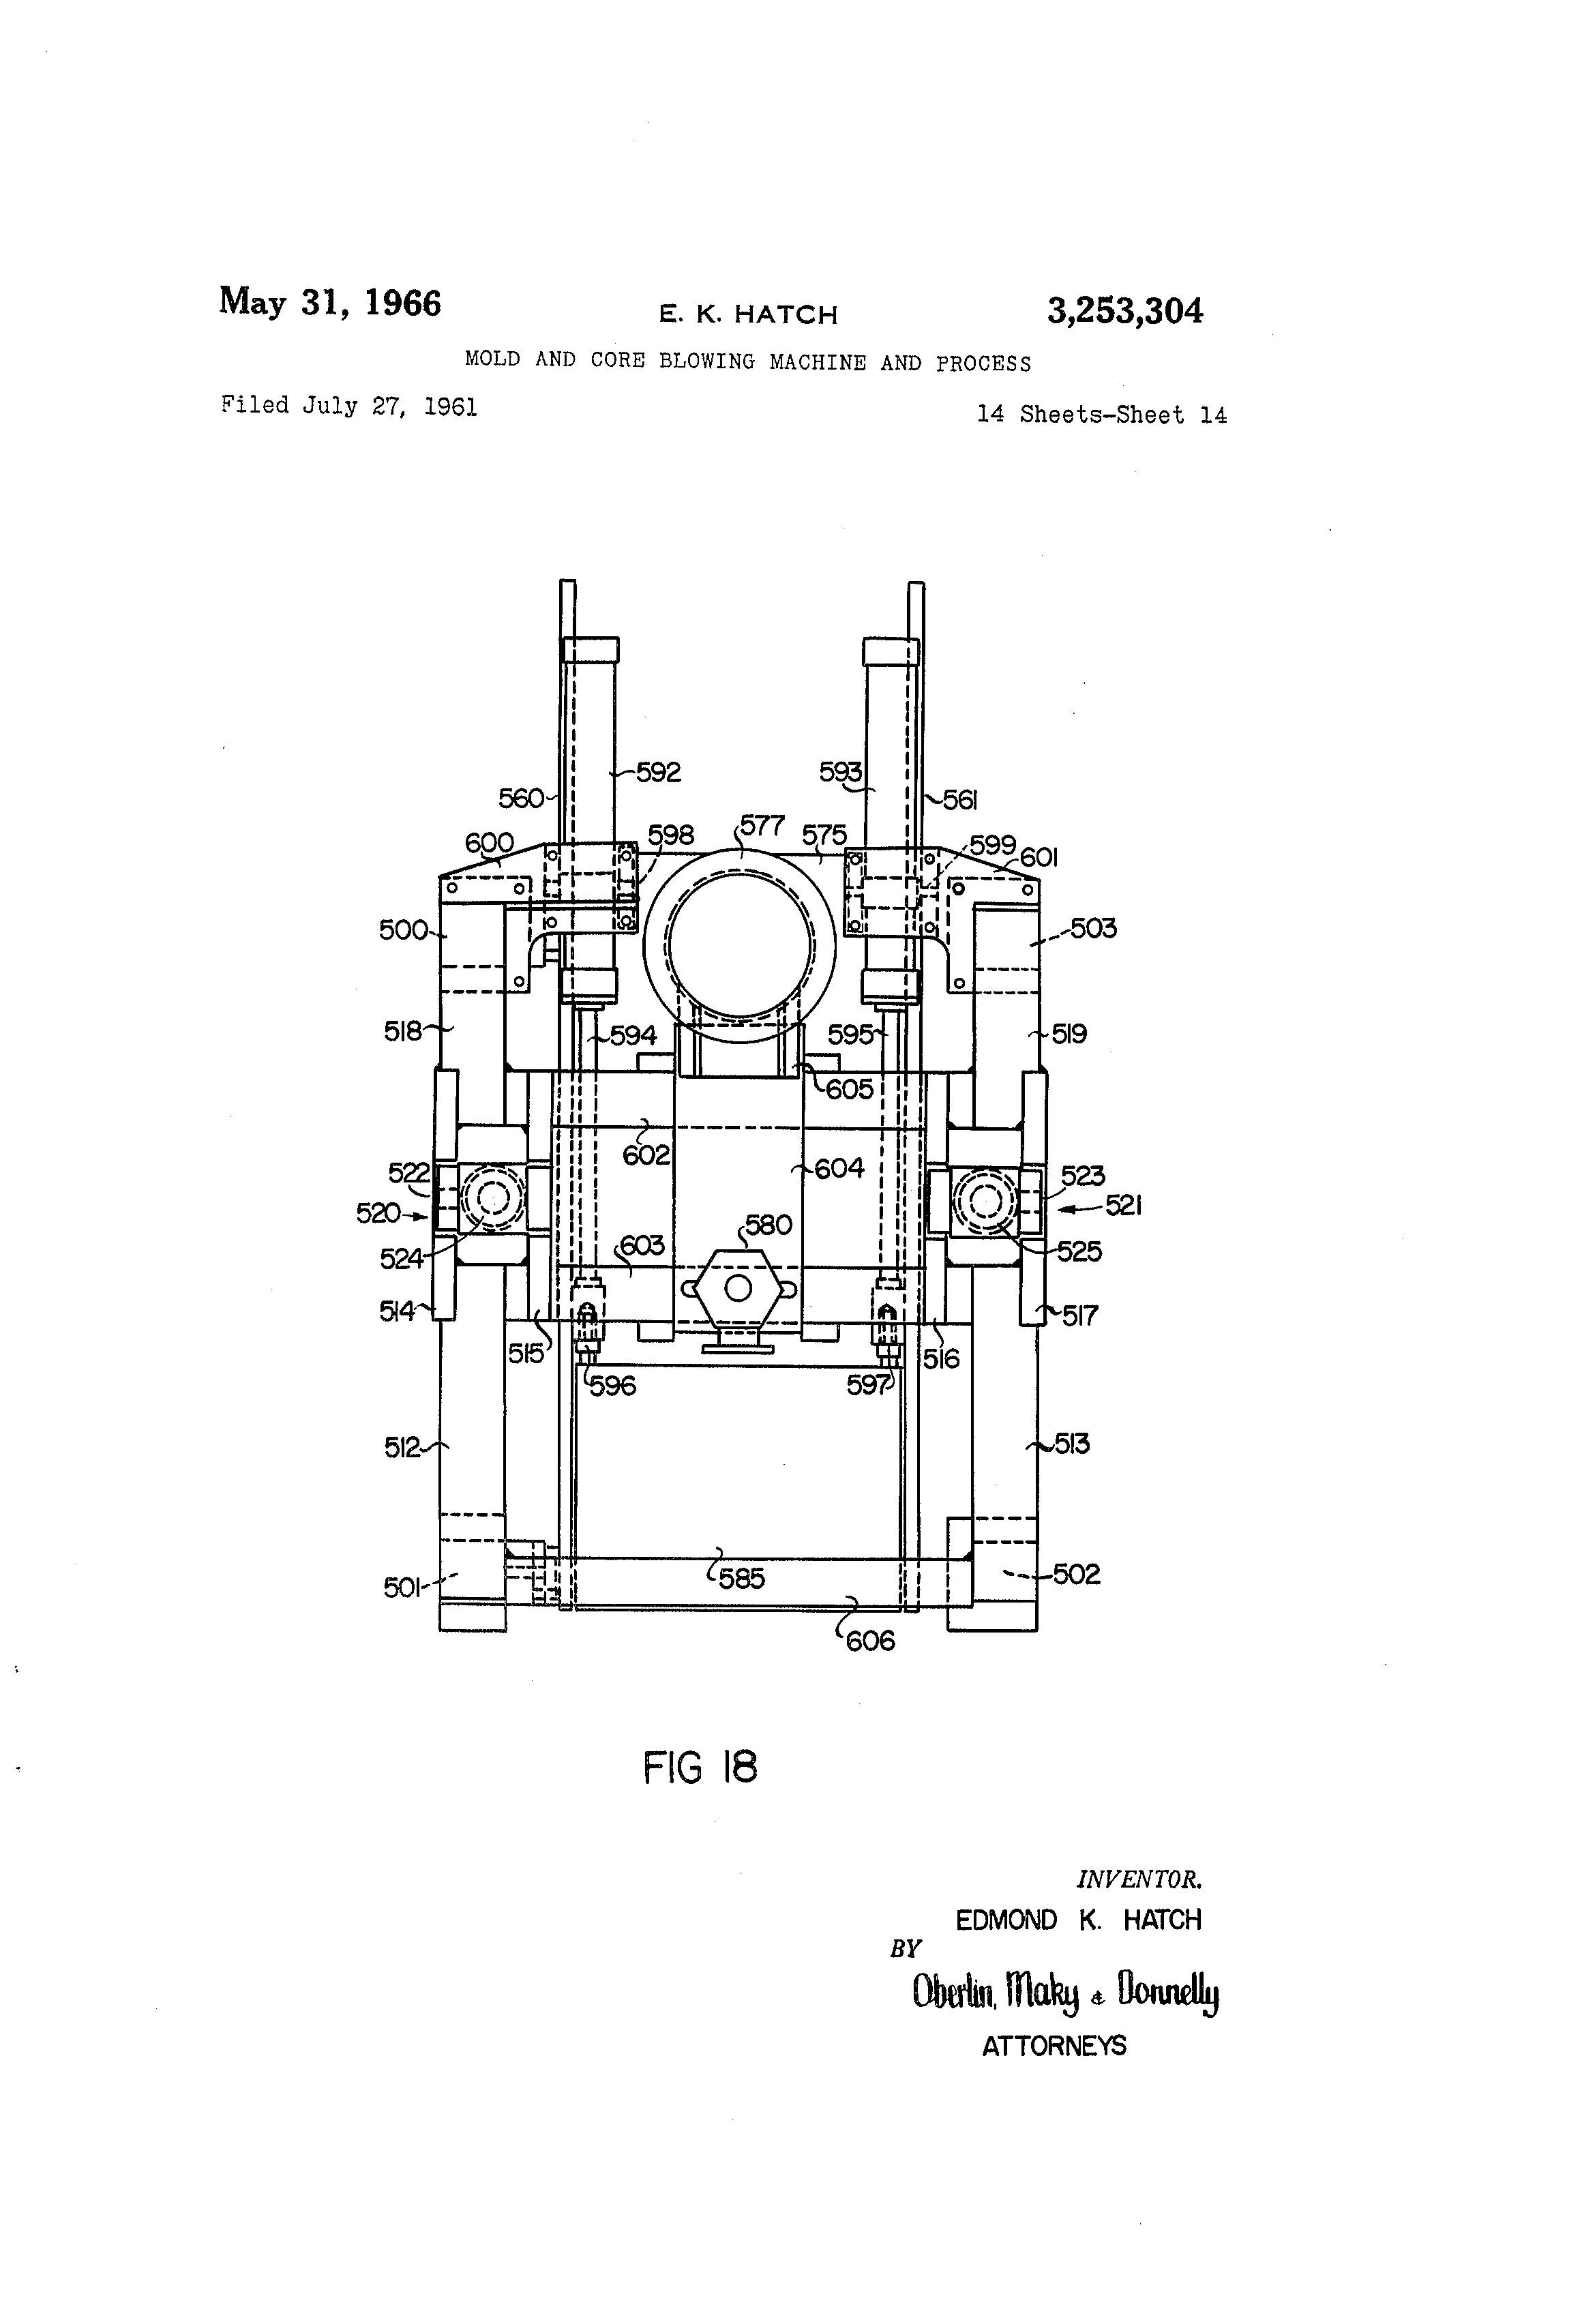 US3253304 13 patent us3253304 mold and core blowing machine and process  at cos-gaming.co